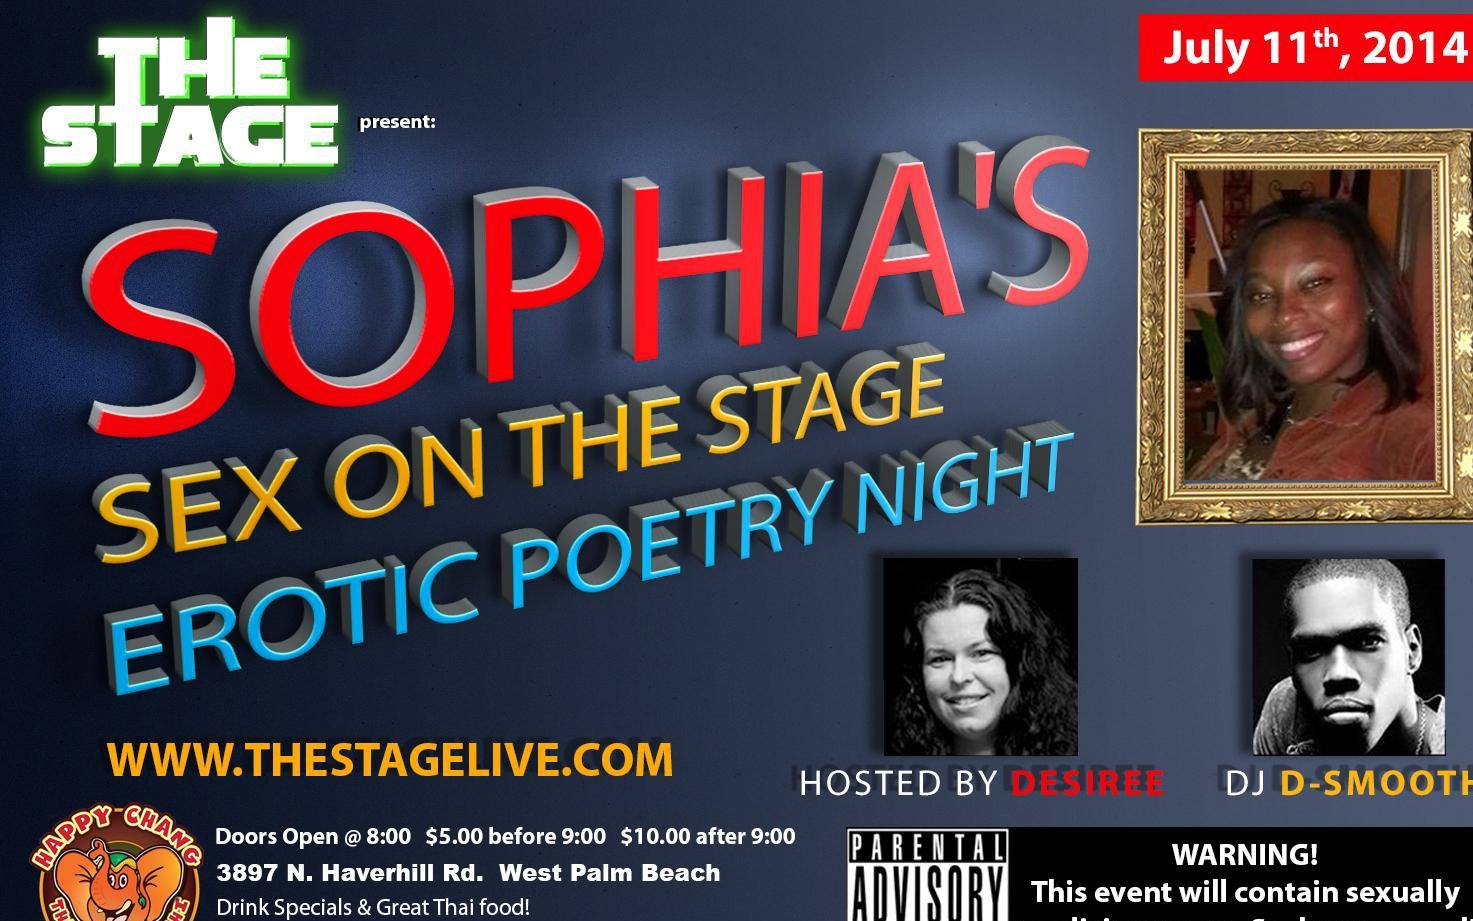 Sophia's Sex on The Stage July 11th